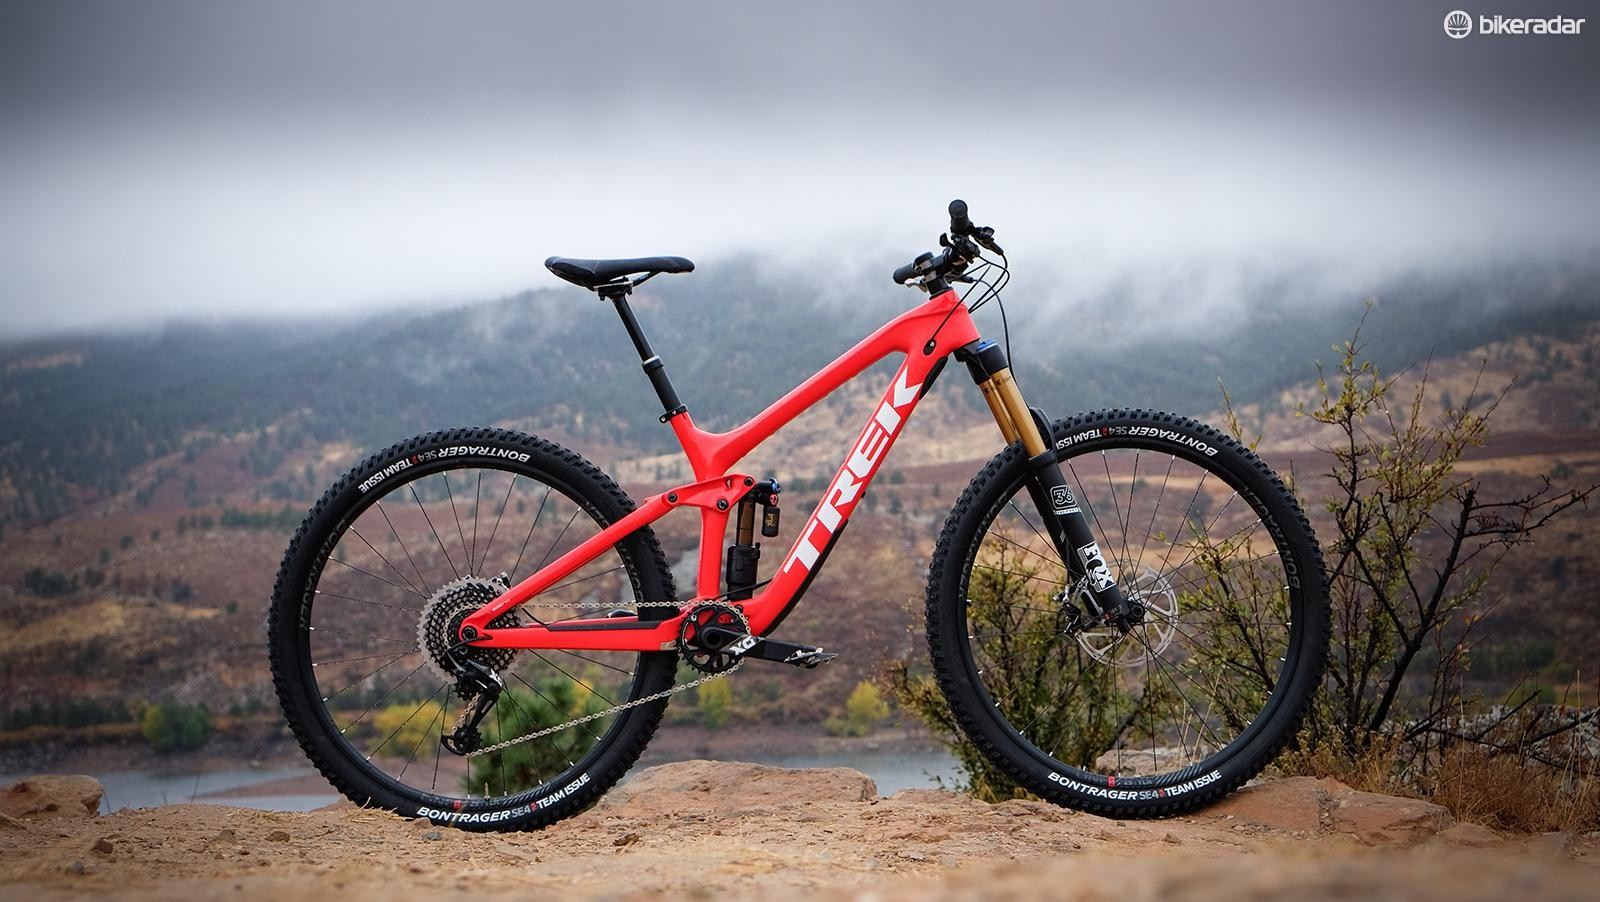 The Slash 9.9 is a potent enduro weapon